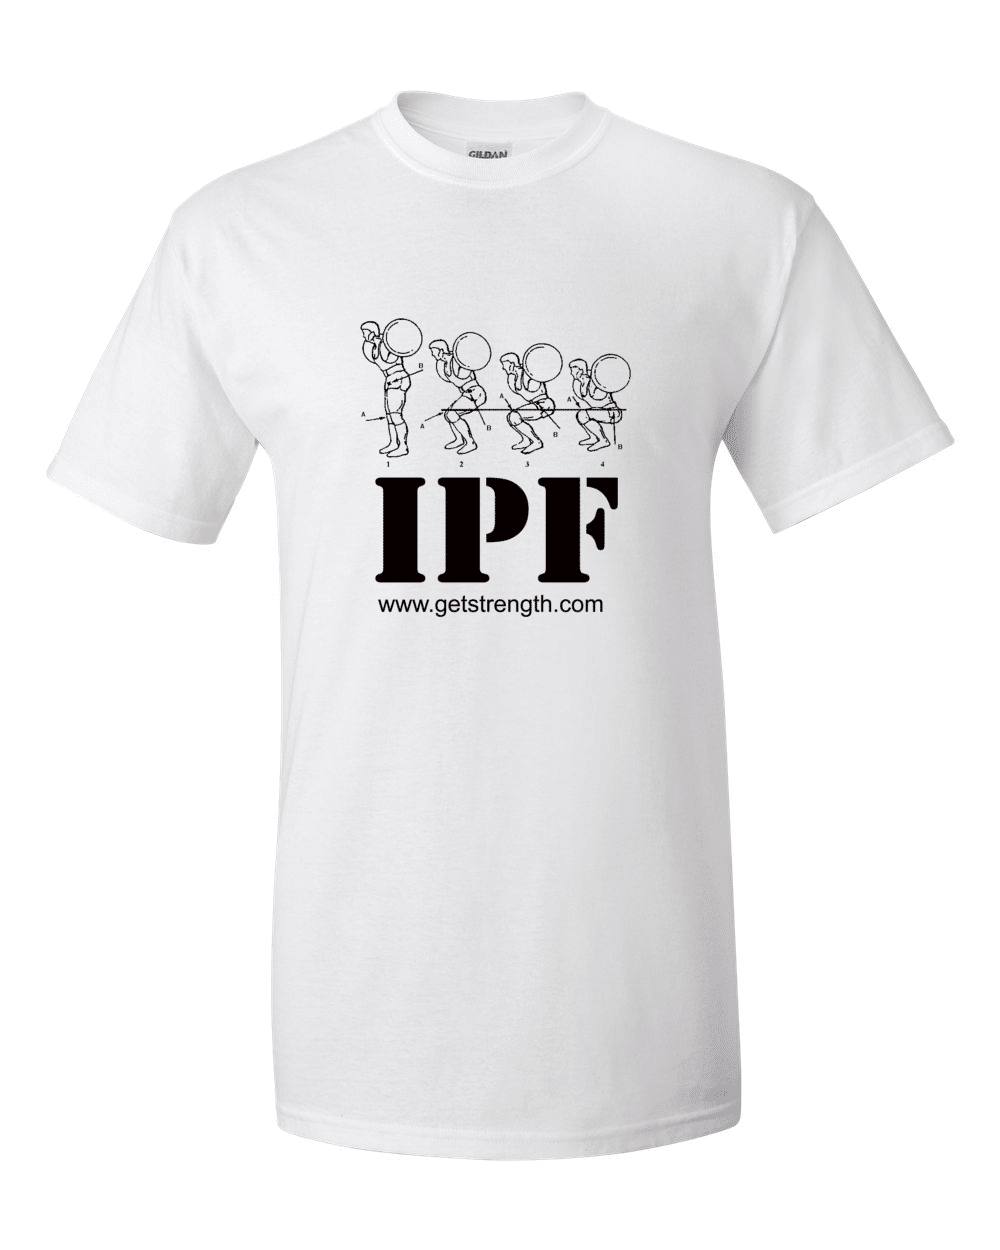 IPF Powerlifting Training T-Shirt White - Light